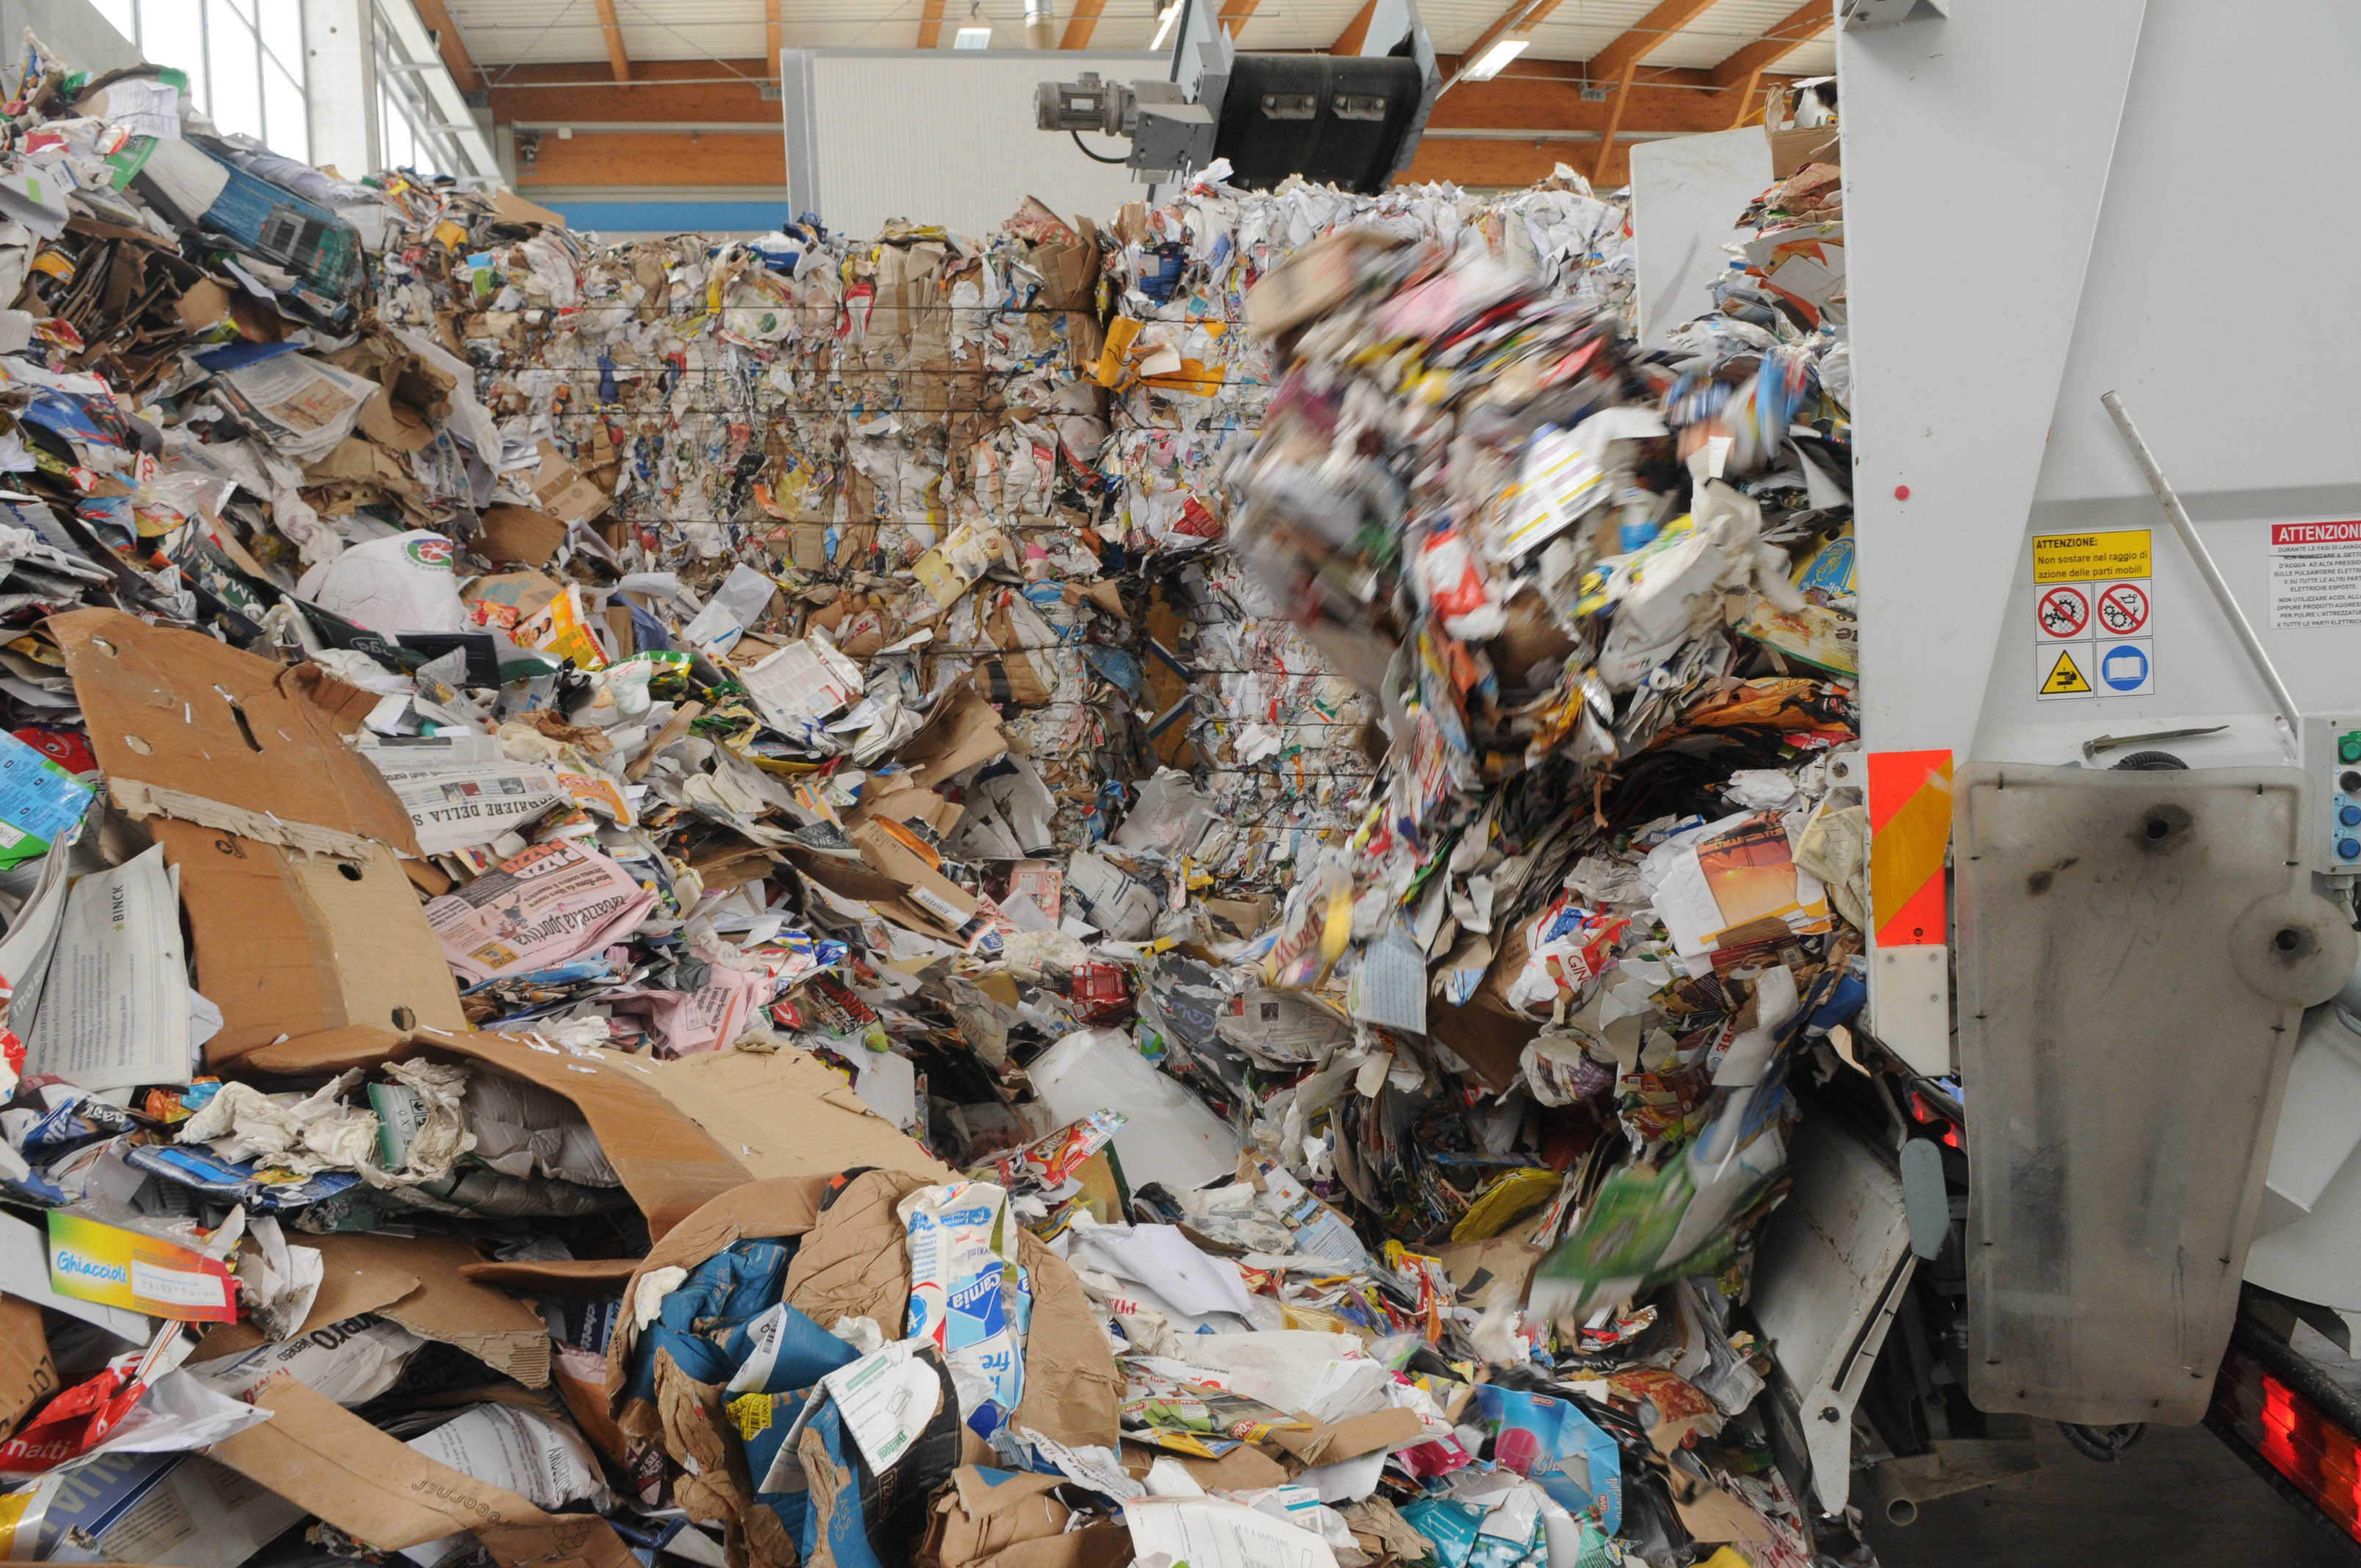 Scope Elettriche Ad Acqua.Learn How Where When To Recycle Aviano Air Base Article Display